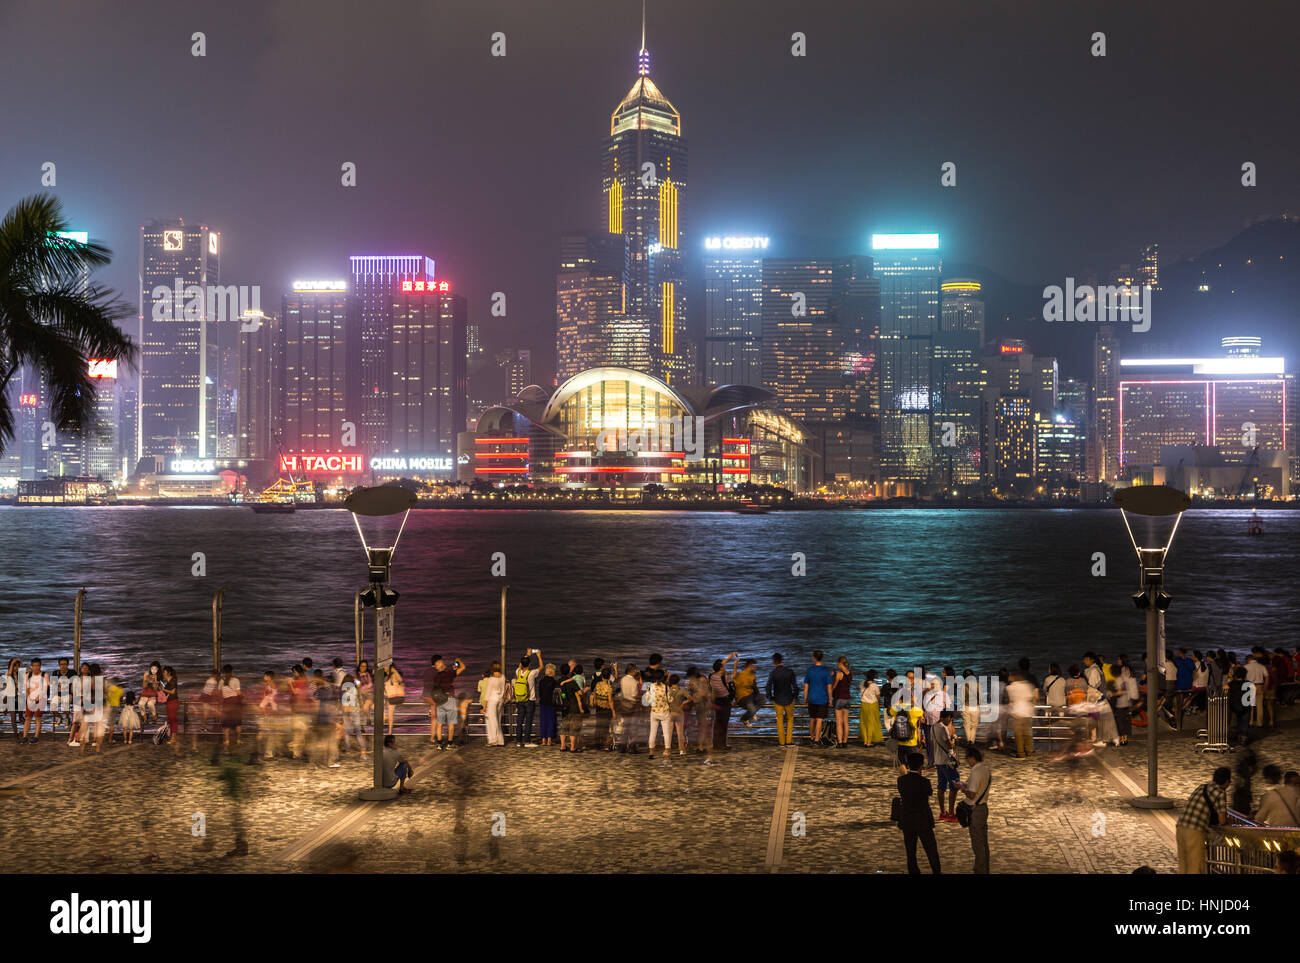 HONG KONG - OCTOBER 2, 2015: People, captured with blurred motion, enjoying the famous Hong Kong skyline from the - Stock Image